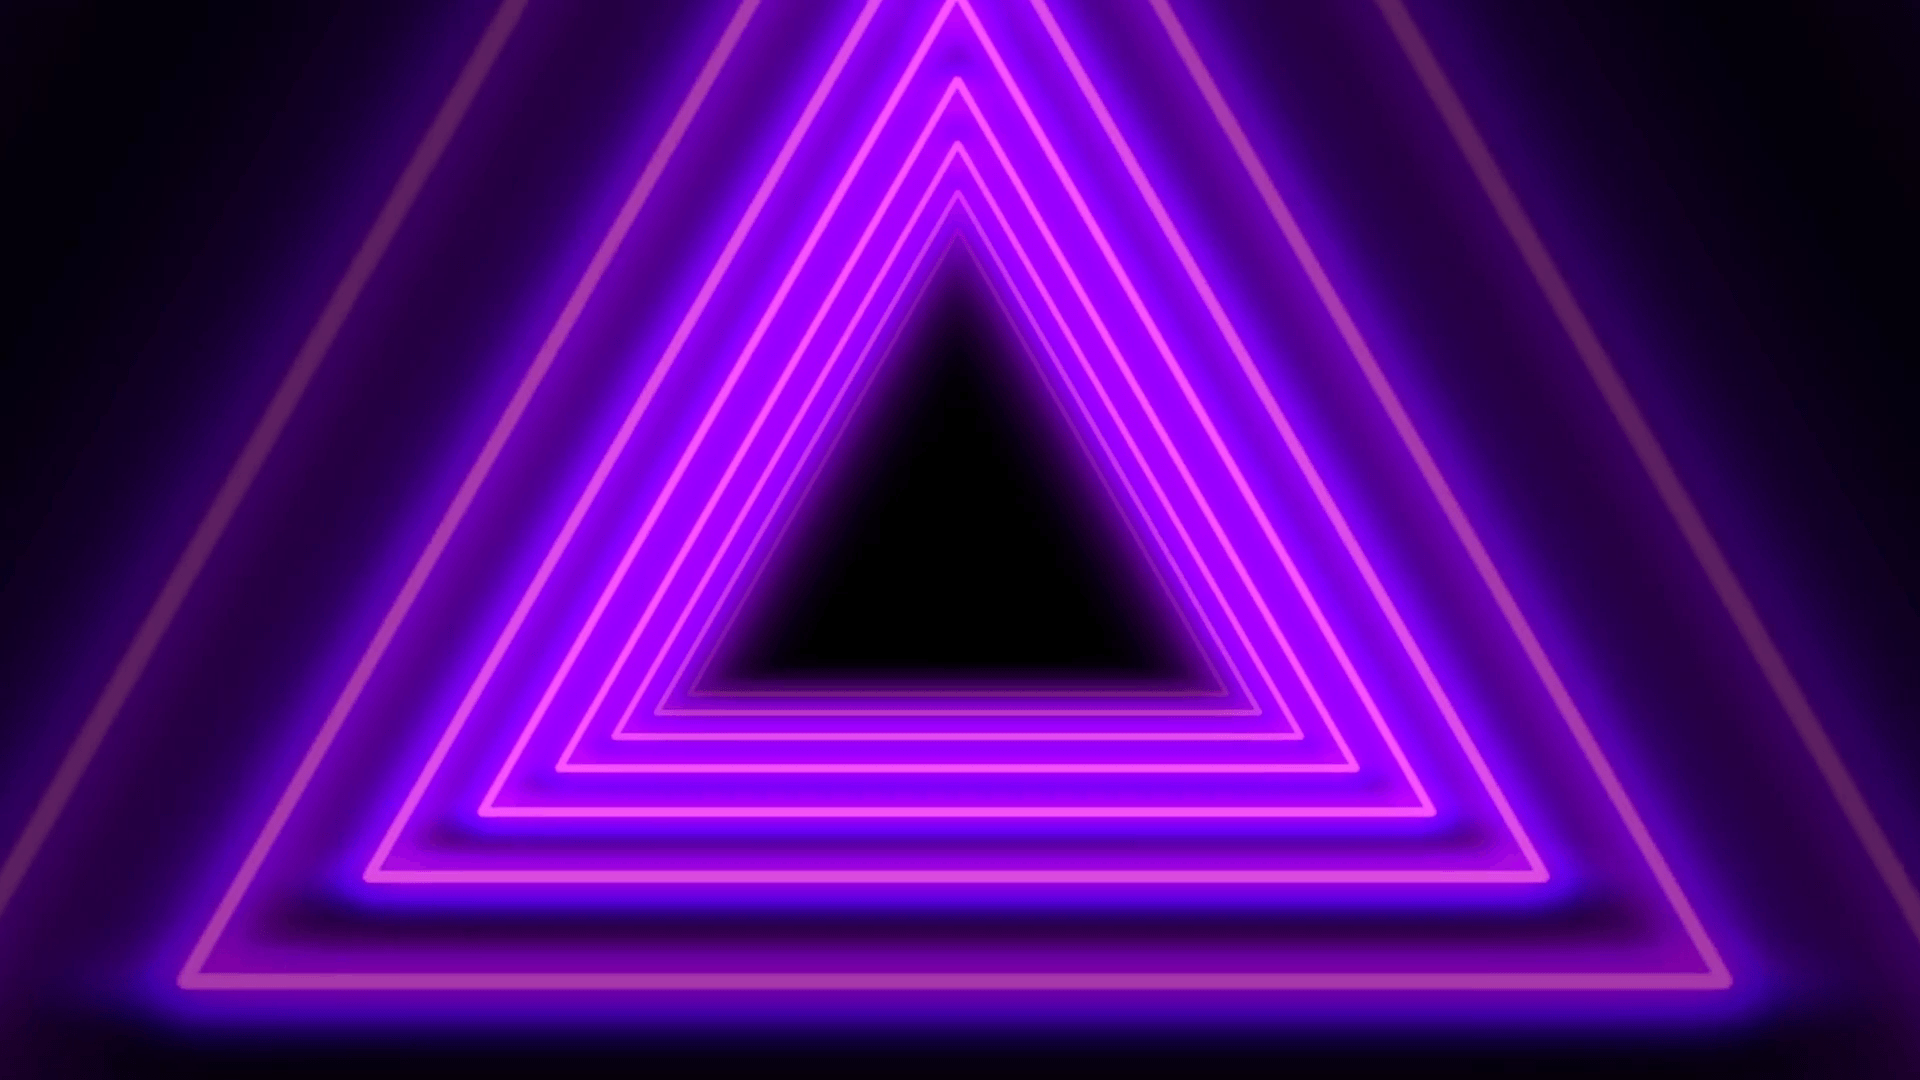 Neon Triangle Wallpapers - Wallpaper Cave